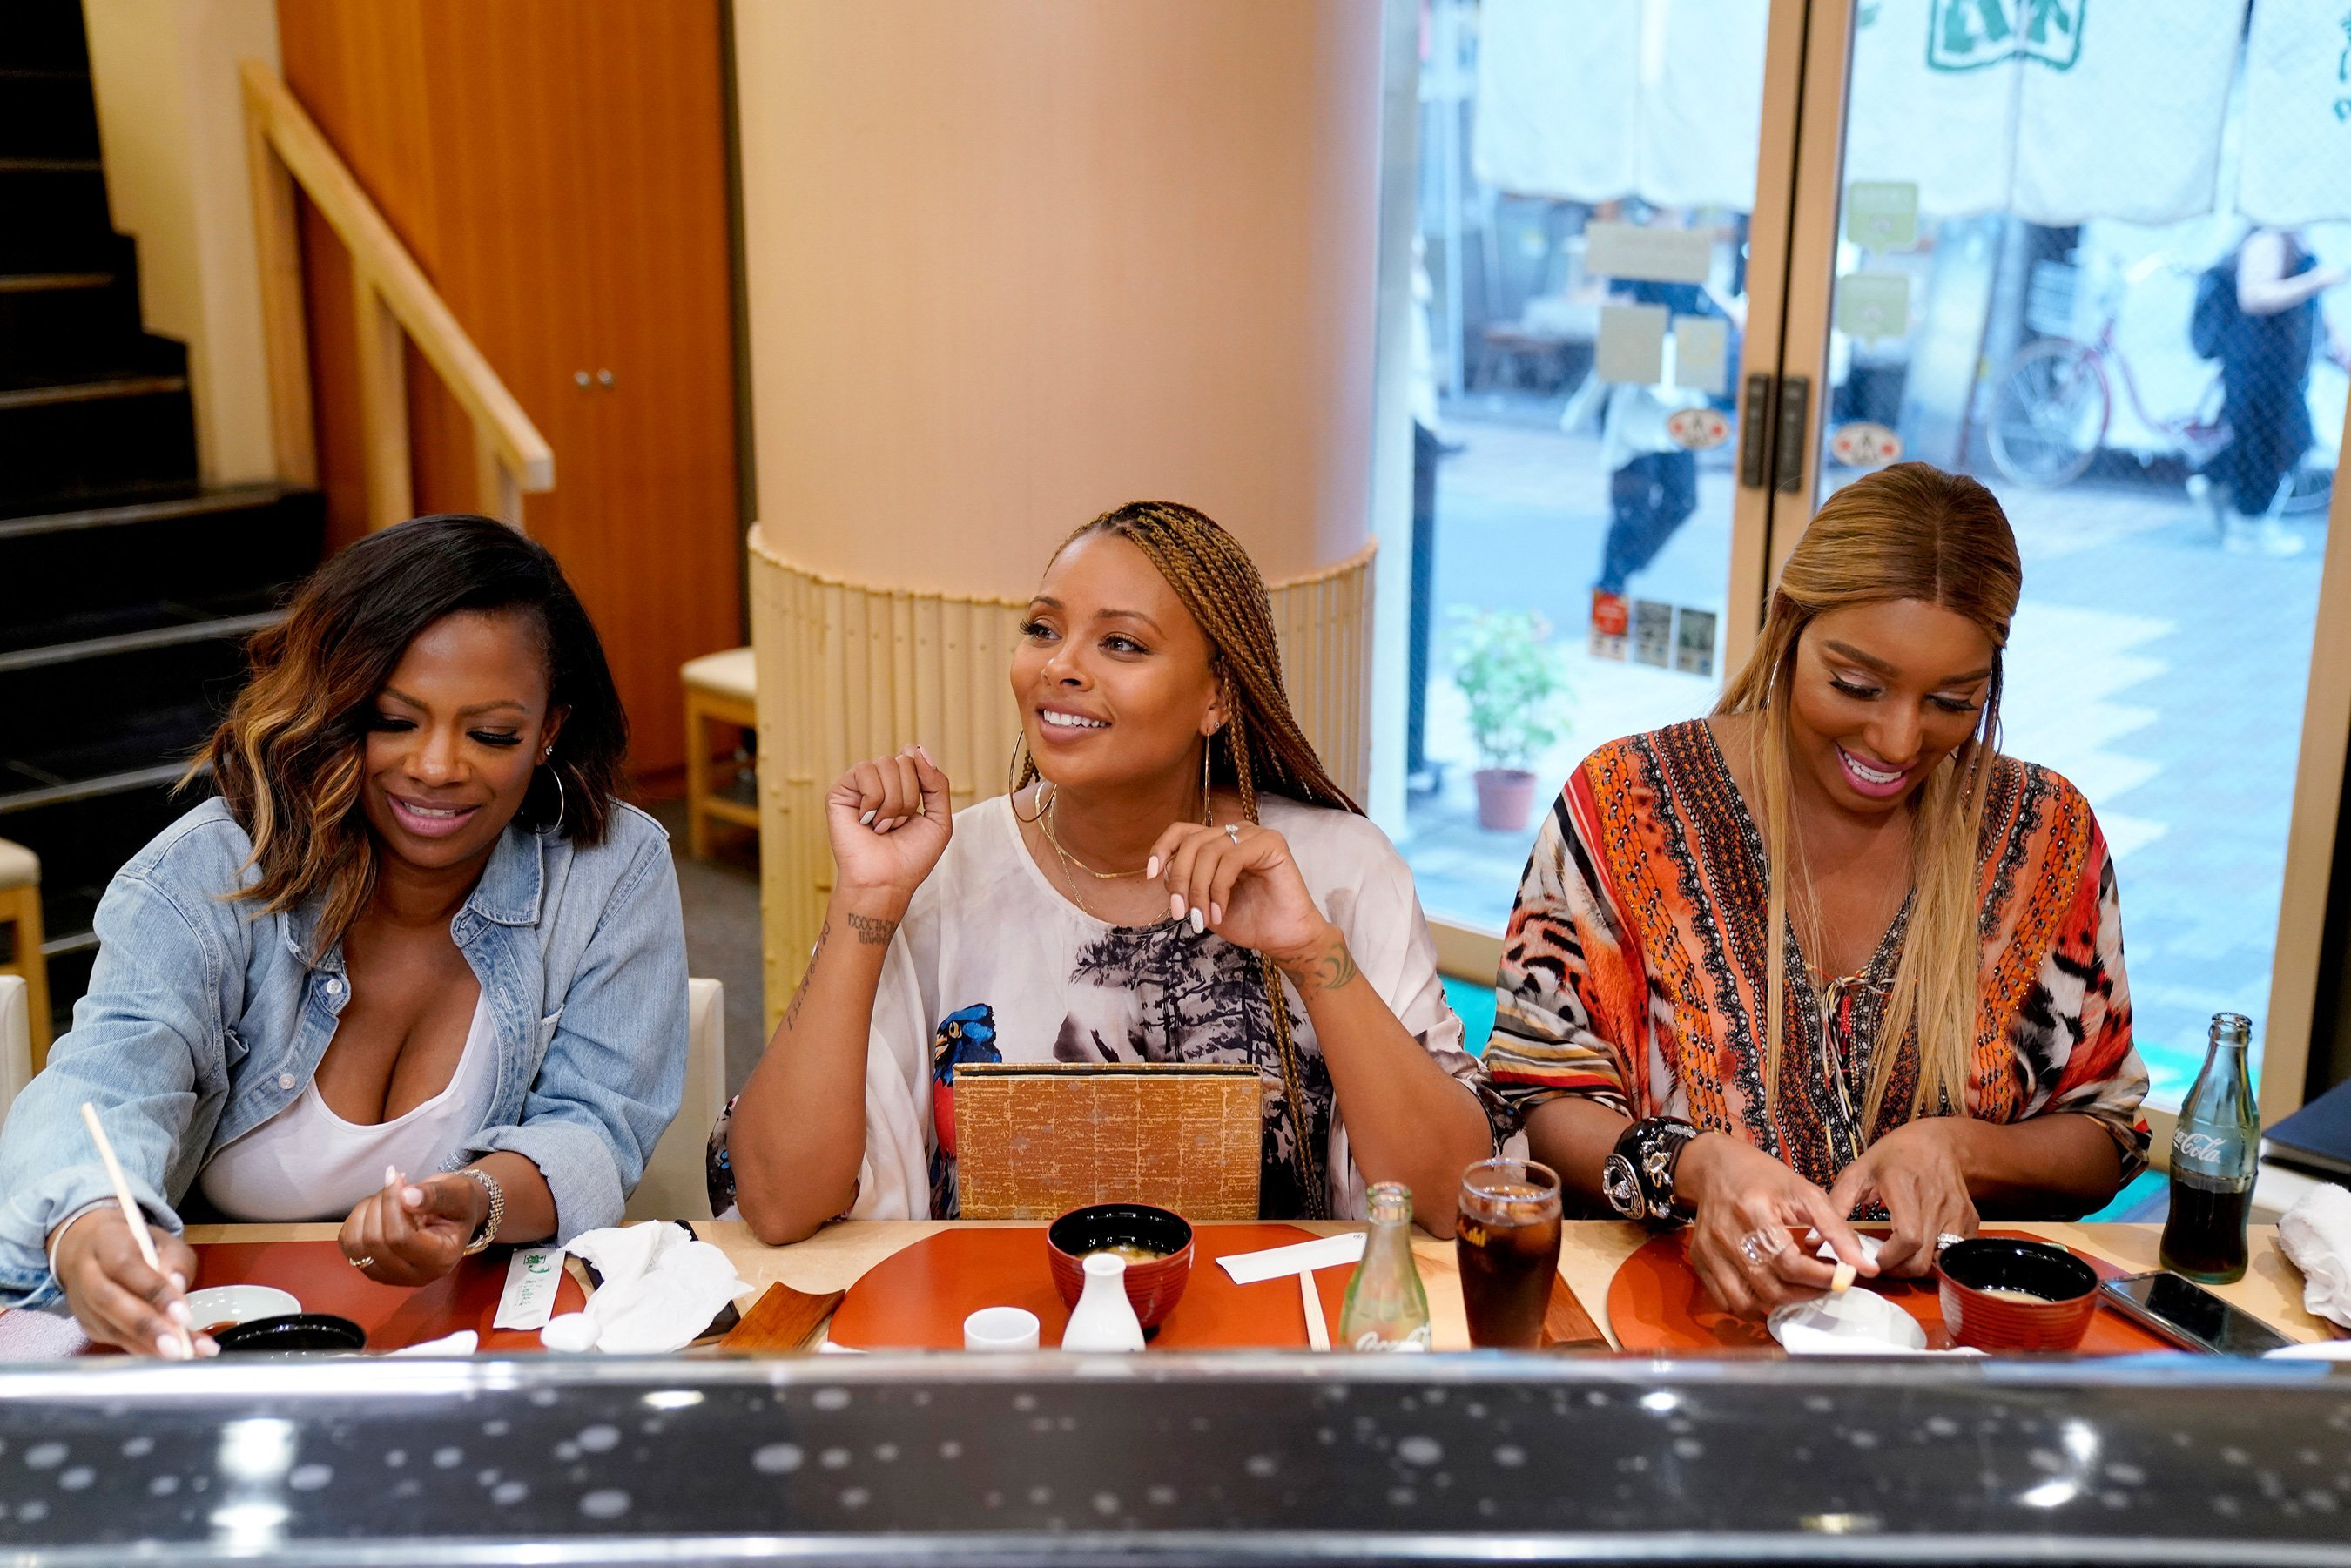 The Real Housewives of Atlanta Cast Goes to Japan, Eats McDonald's: 'Finally Some Real Food'